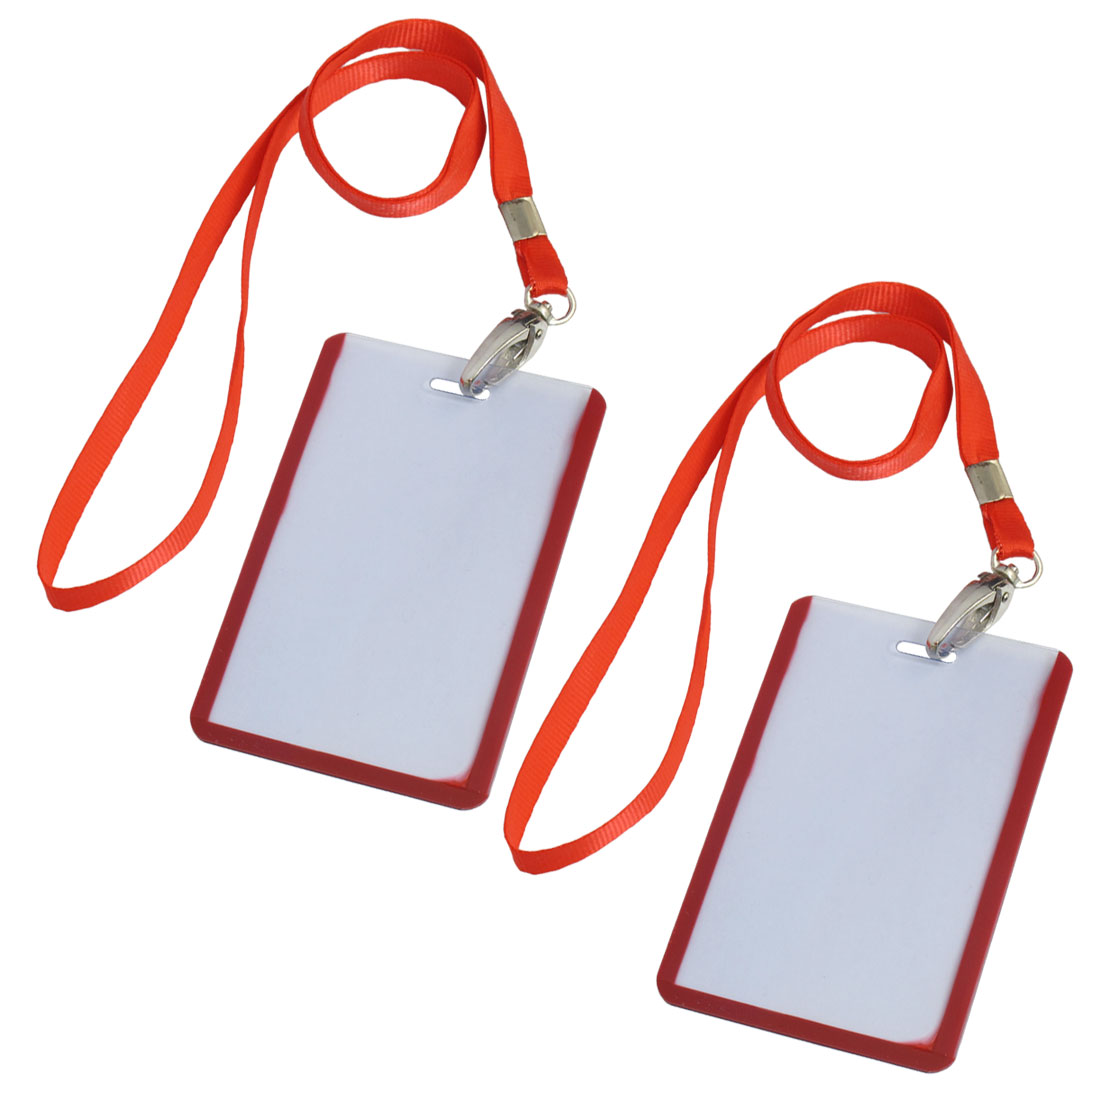 2 Pcs School Office Red Lanyard Vertical B8 ID Name Badge Card Holders